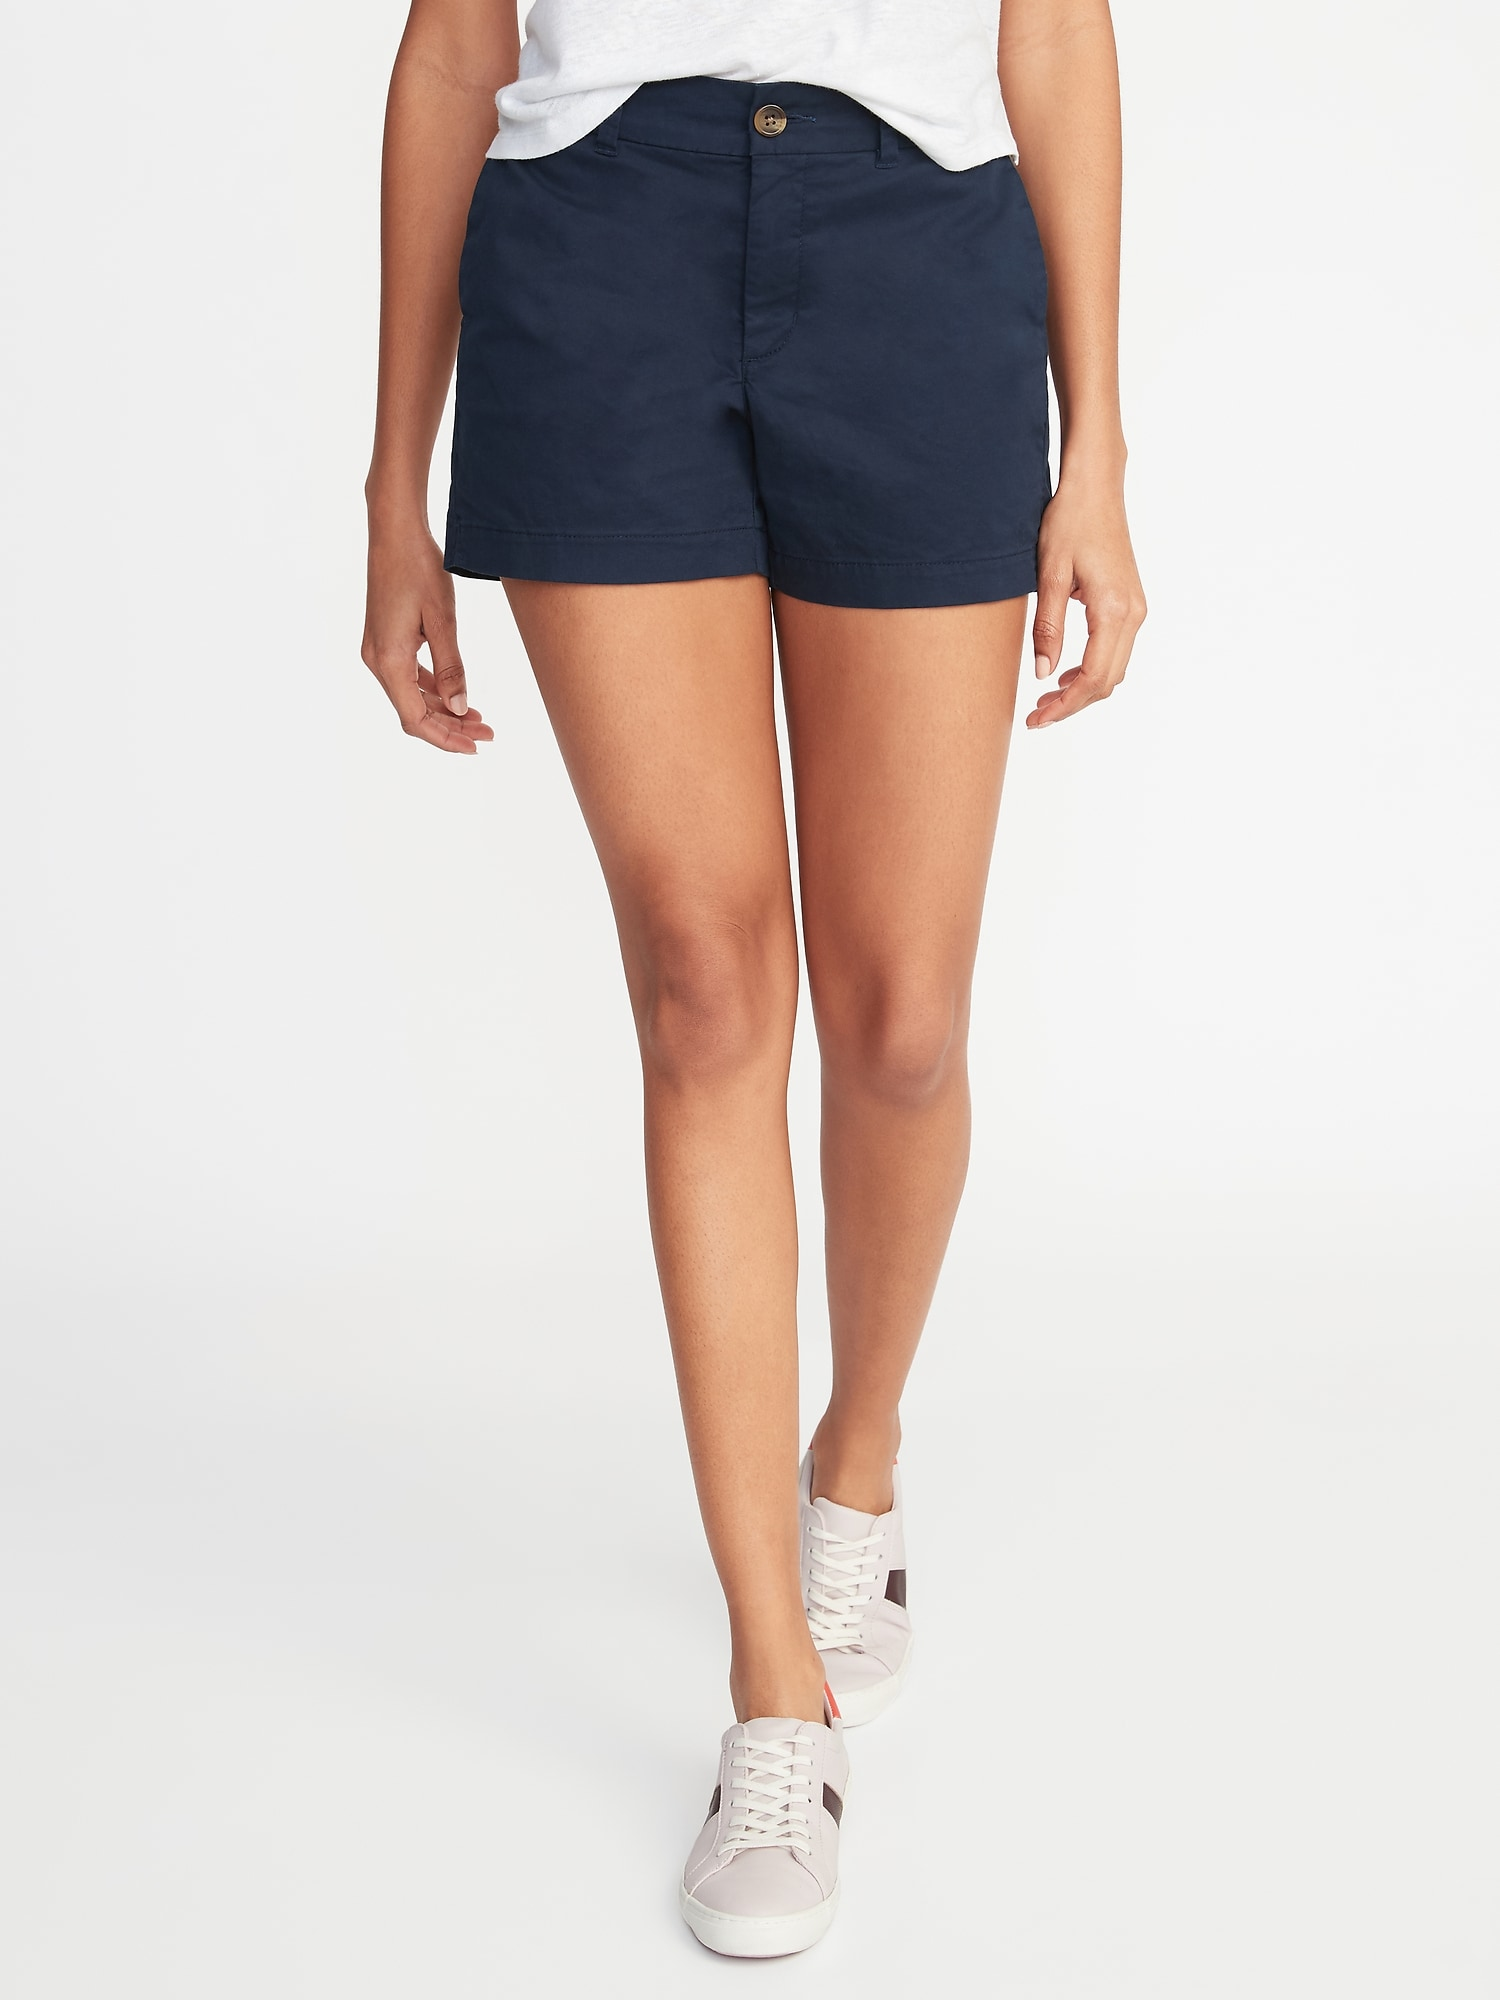 05b3e7c3ba Mid-Rise Twill Everyday Shorts for Women -- 5-inch inseam | Old Navy